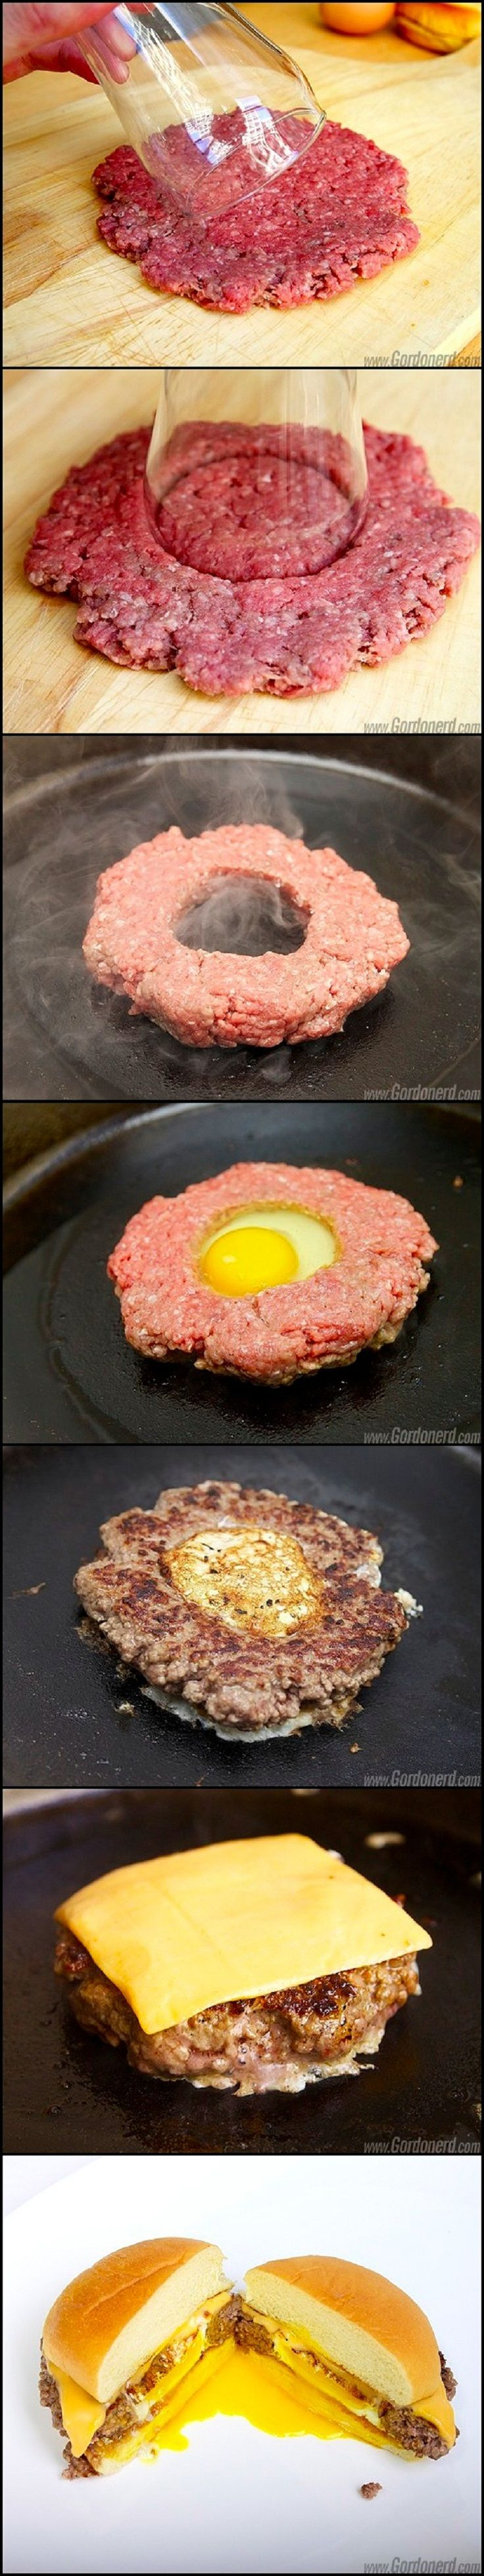 How to...Make a Hamburger Egg Burger with extra lean turkey meat! get your protein for Breakfast!